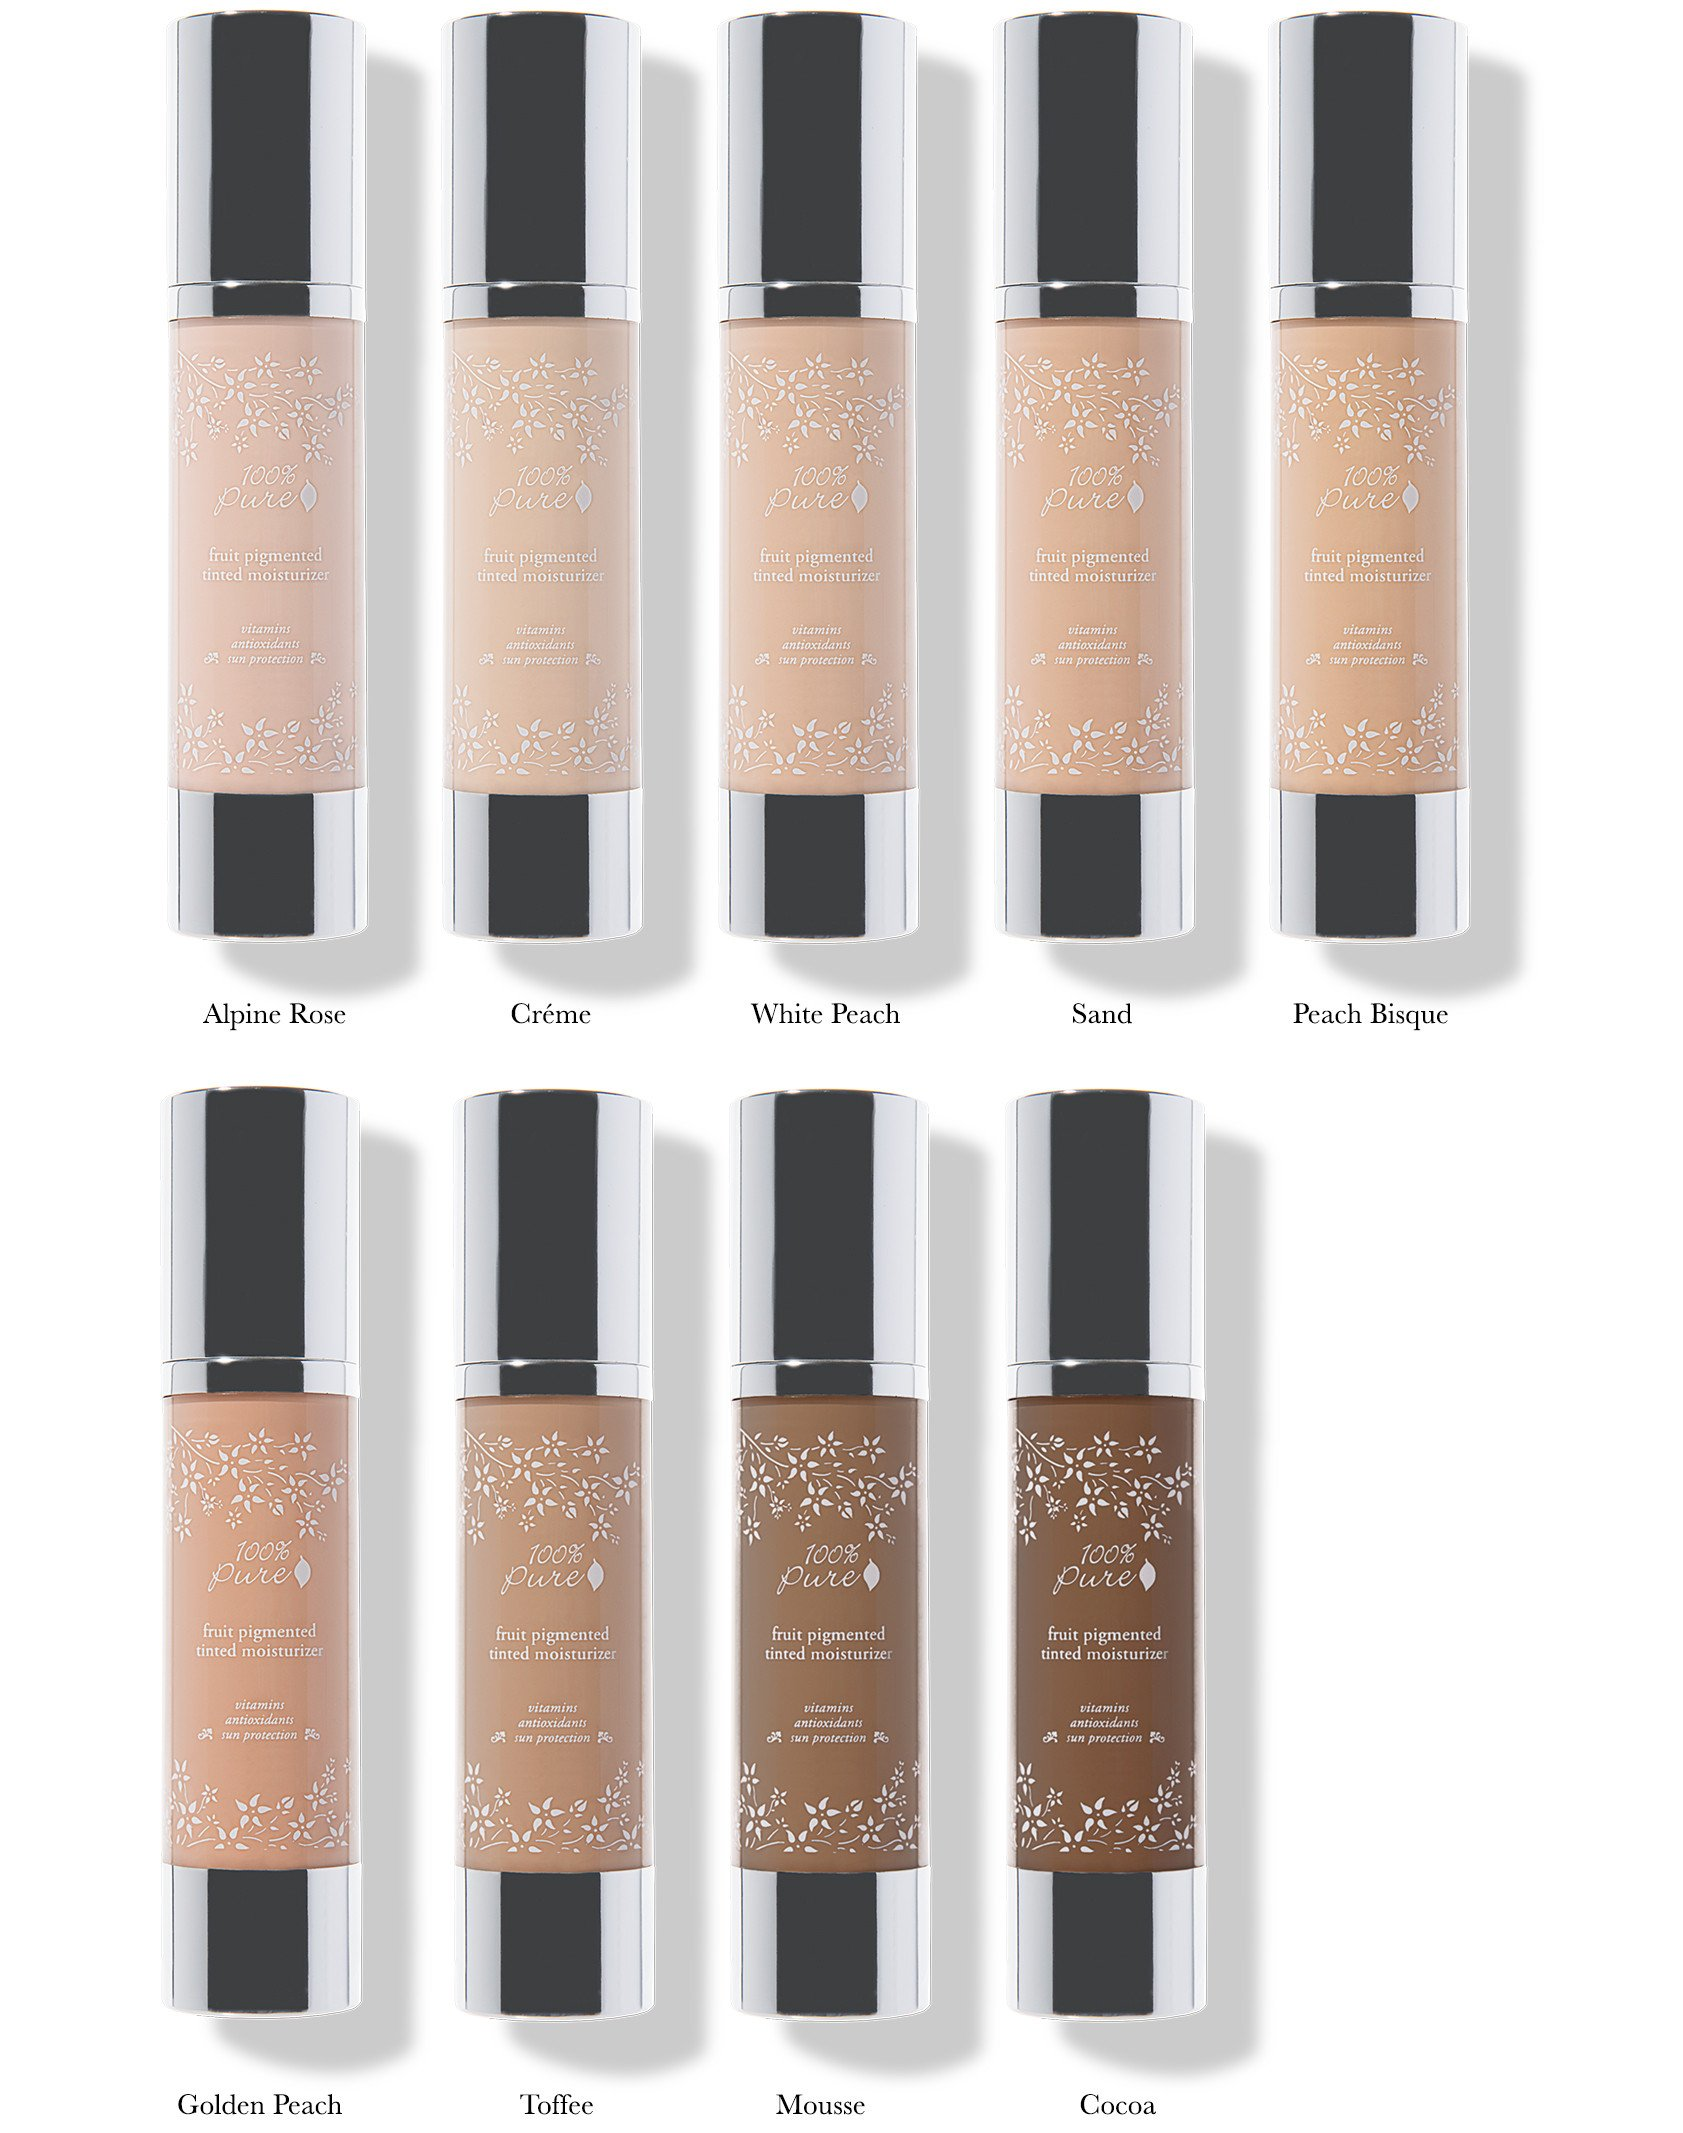 100% Pure Naturkosmetik Foundation / Fruit Pigmented Tinted Moisturizer